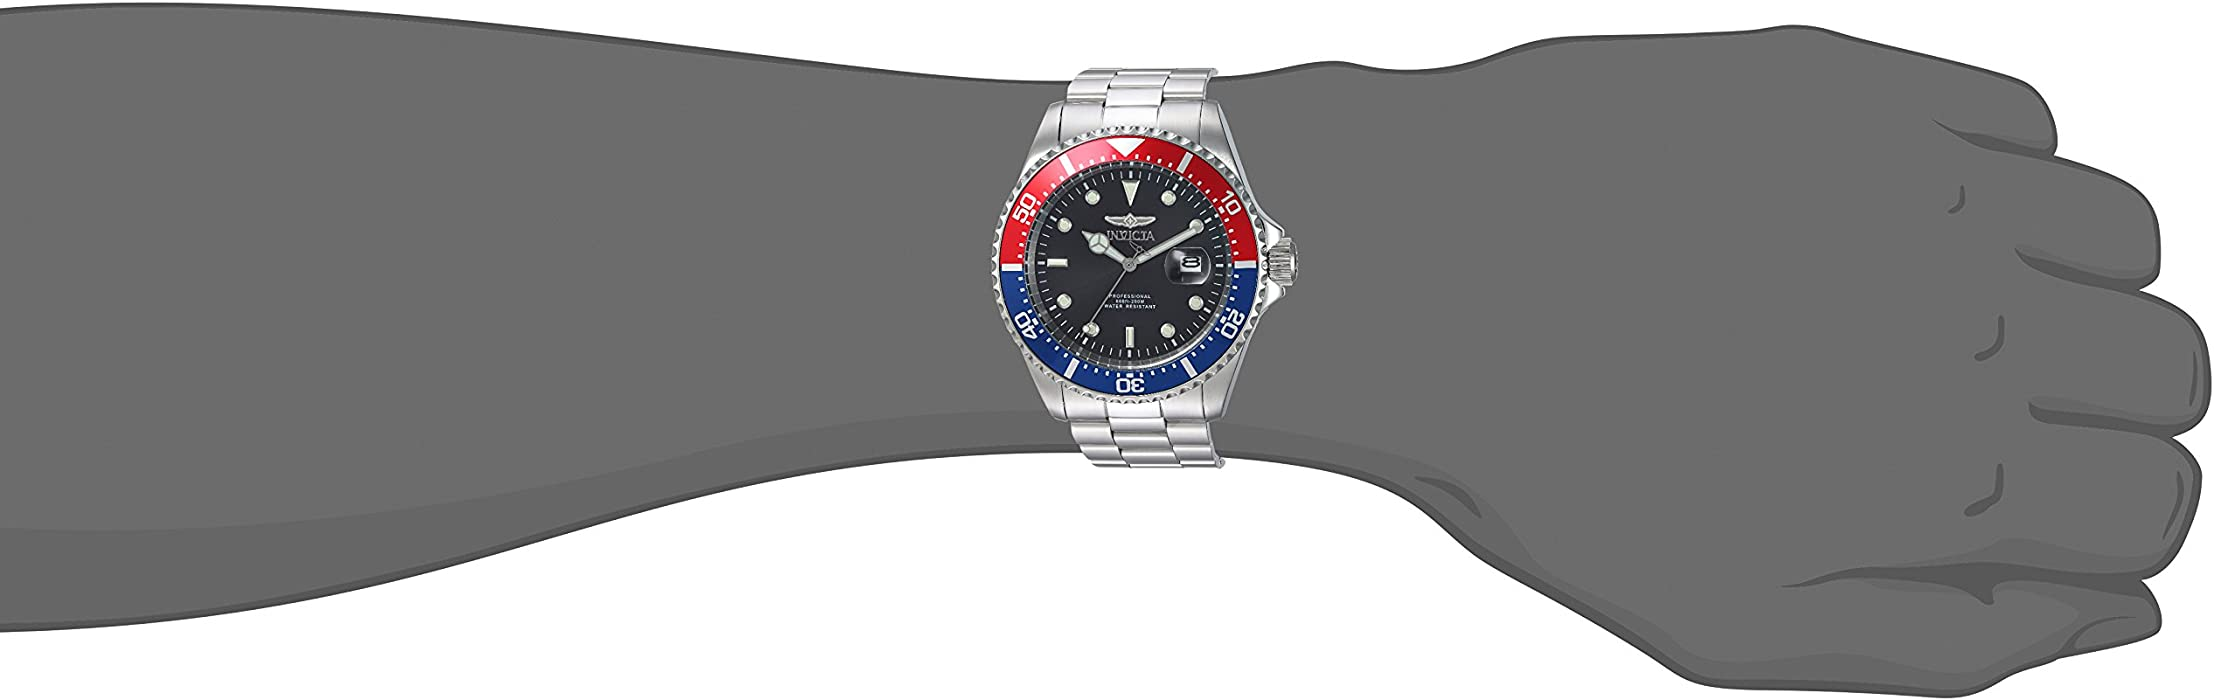 Invicta Men Pro Diver Quartz Diving Watch with StainlessSteel Strap Silver 14 Model 23384